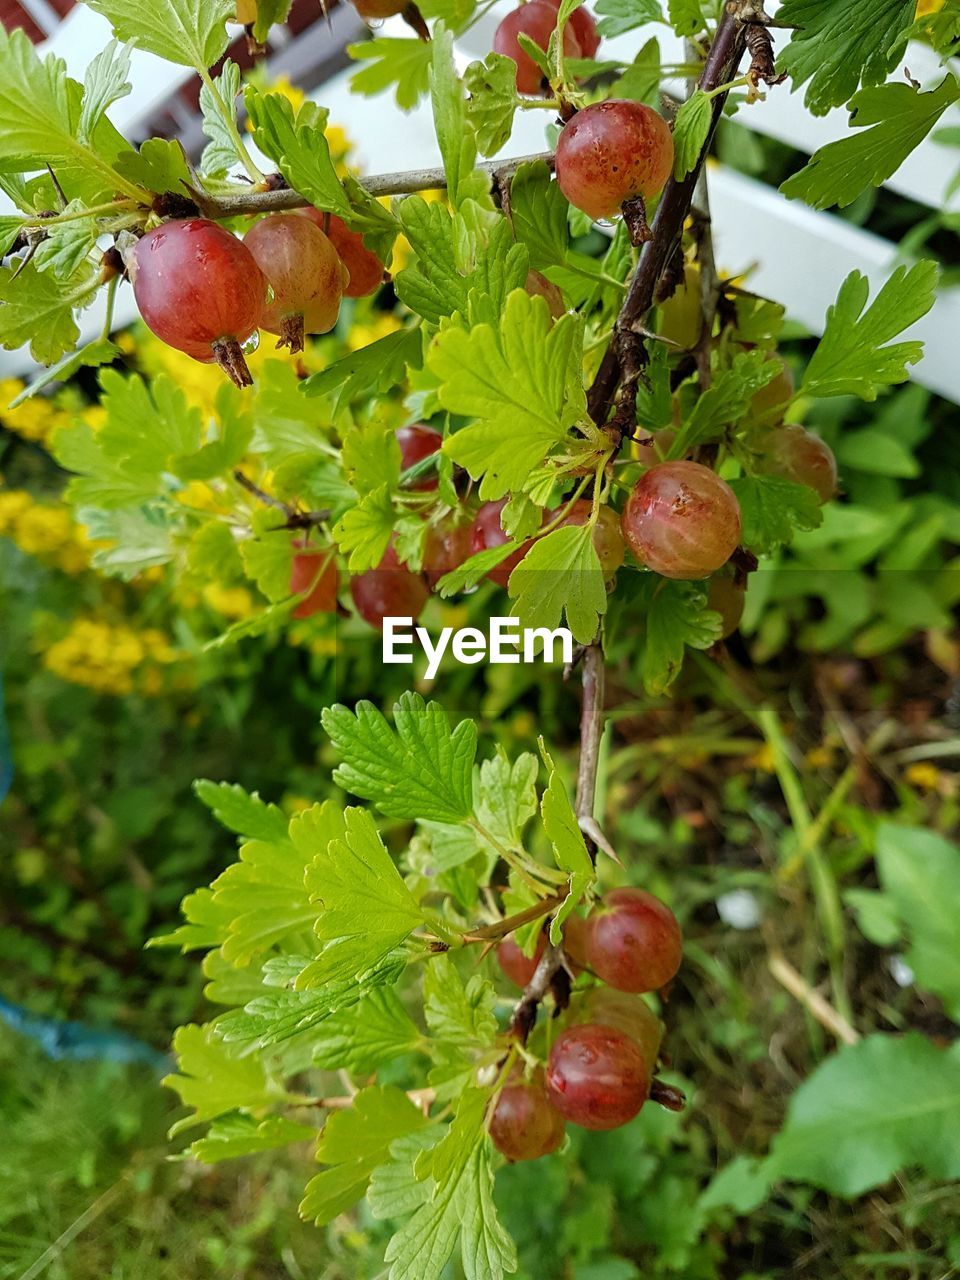 growth, fruit, leaf, food and drink, nature, green color, day, food, growing, outdoors, freshness, plant, focus on foreground, beauty in nature, no people, tree, healthy eating, red, close-up, agriculture